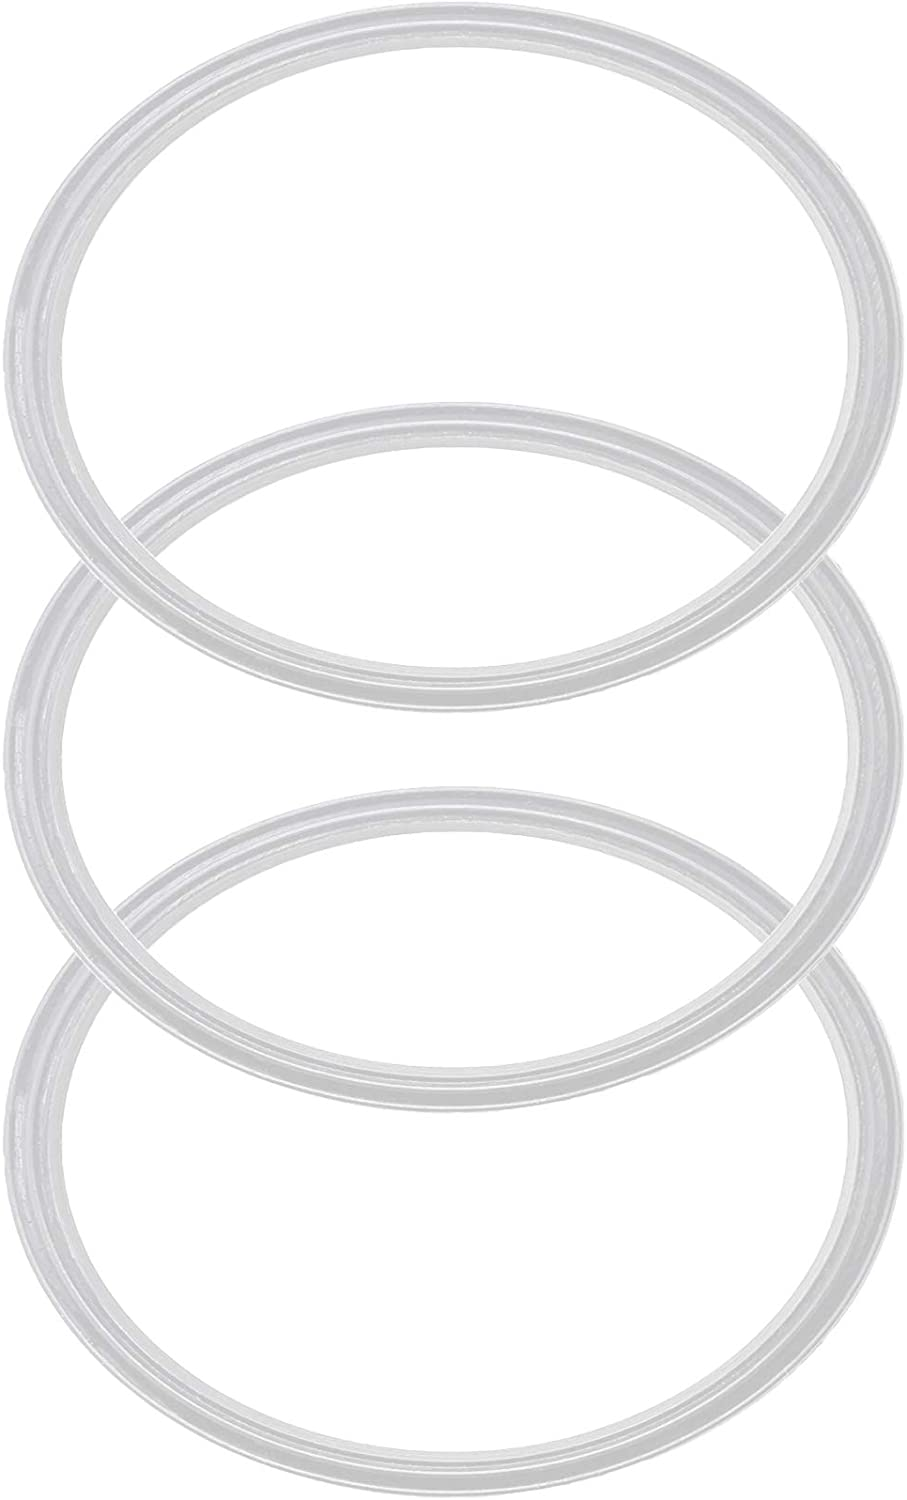 Pack of 3-30 oz Replacement Rubber Lid Ring, Gasket Seals, Lid for Insulated Stainless Steel Tumblers, Cups Vacuum Effect, fit for Brands - Yeti, Ozark Trail, Beast, White Model 2019